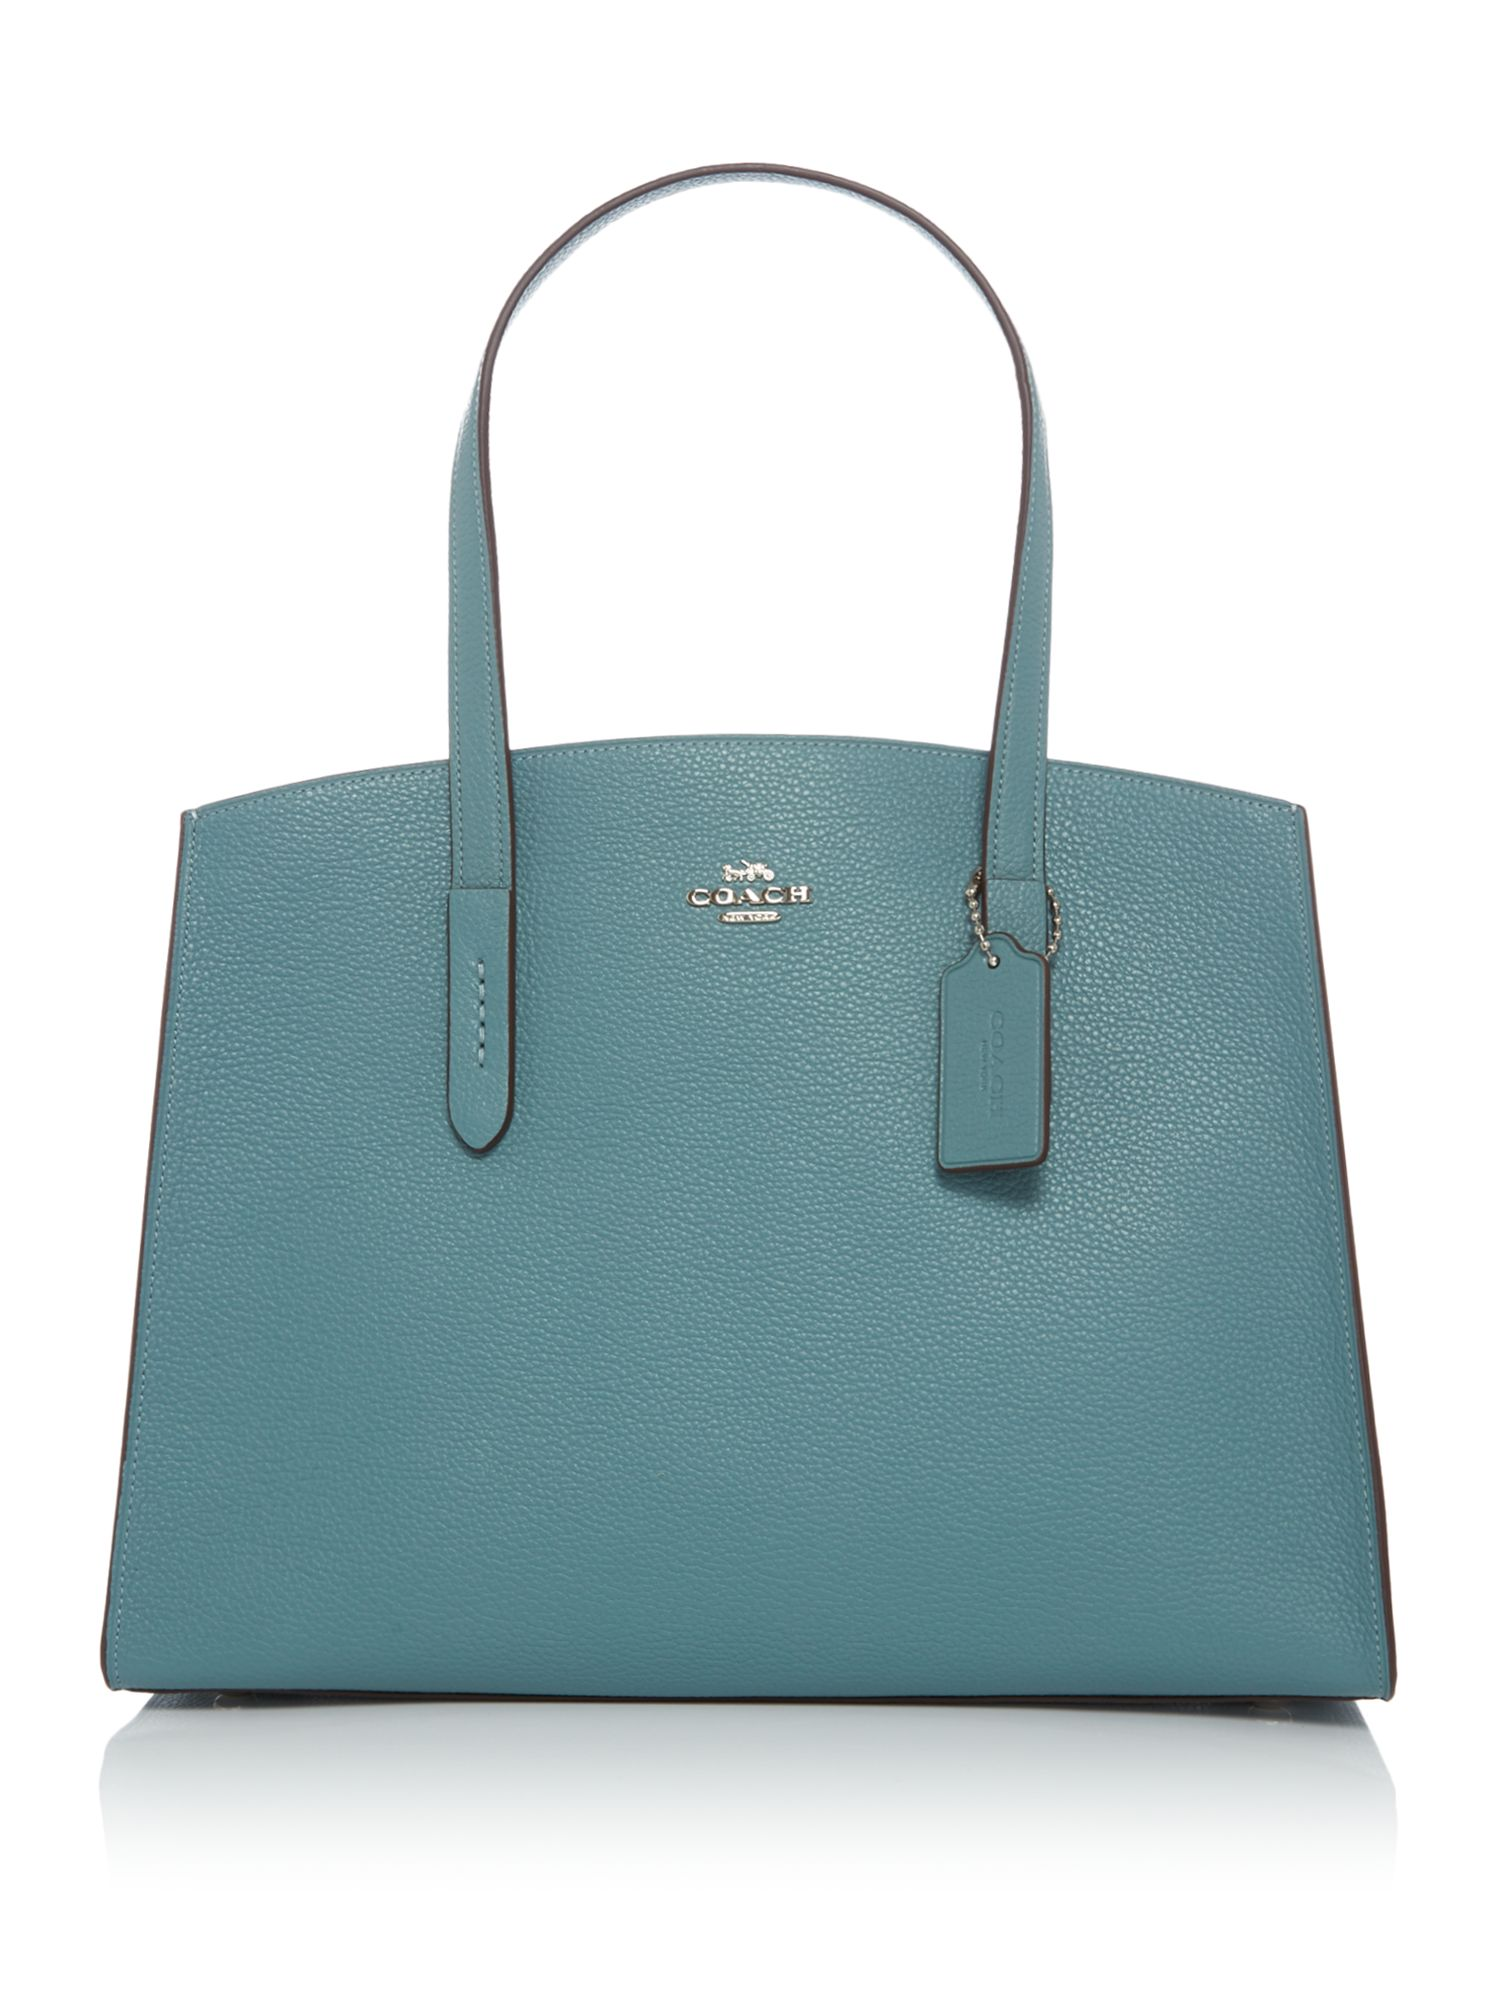 Coach Charlie carryall tote bag, Blue